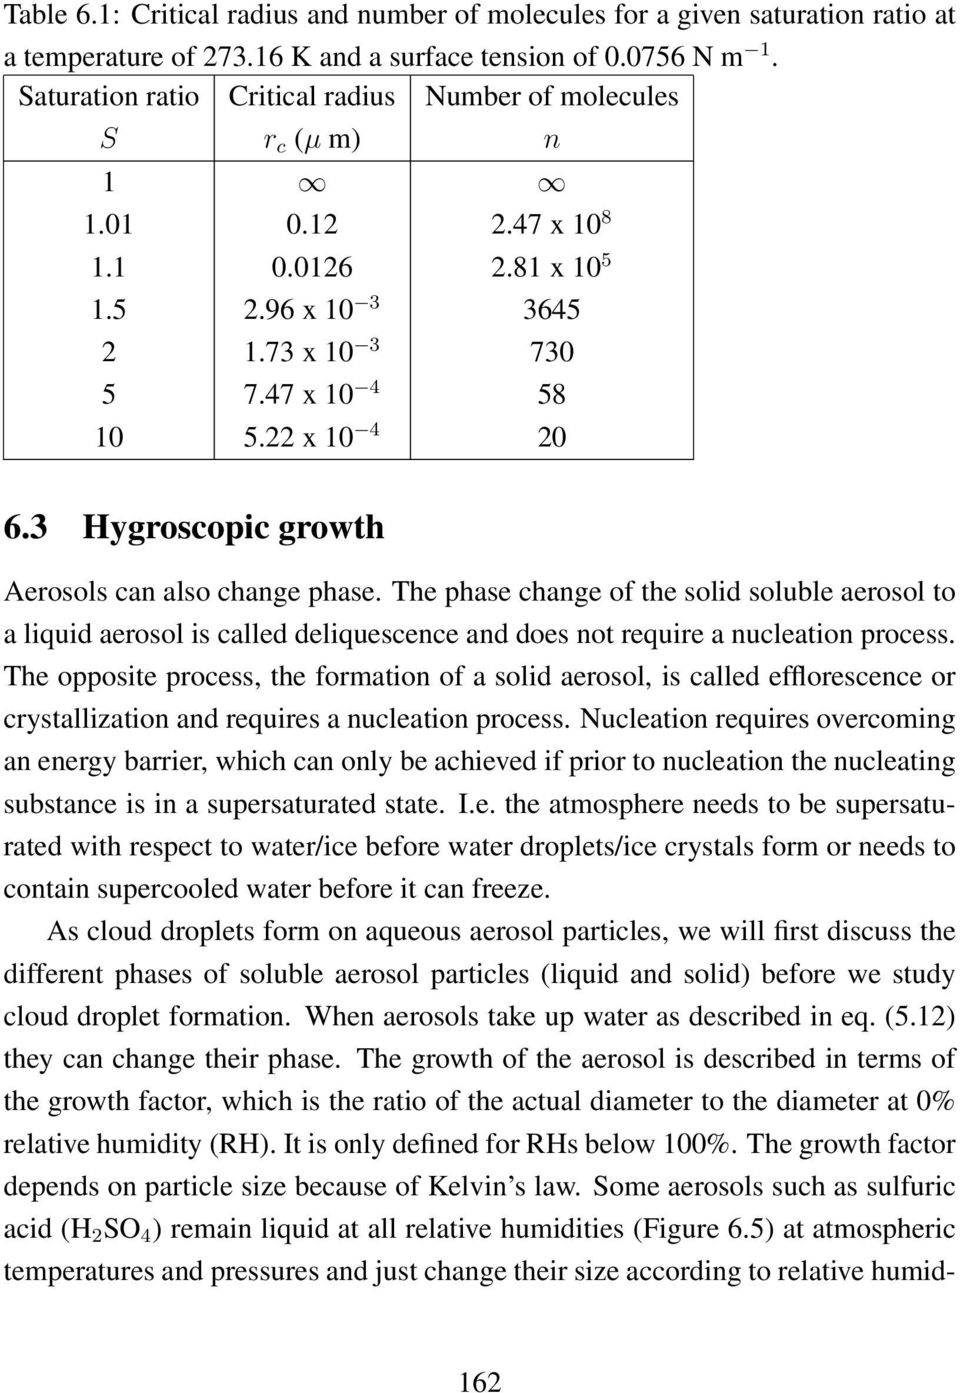 3 Hygroscopic growth Aerosols can also change phase. The phase change of the solid soluble aerosol to a liquid aerosol is called deliquescence and does not require a nucleation process.